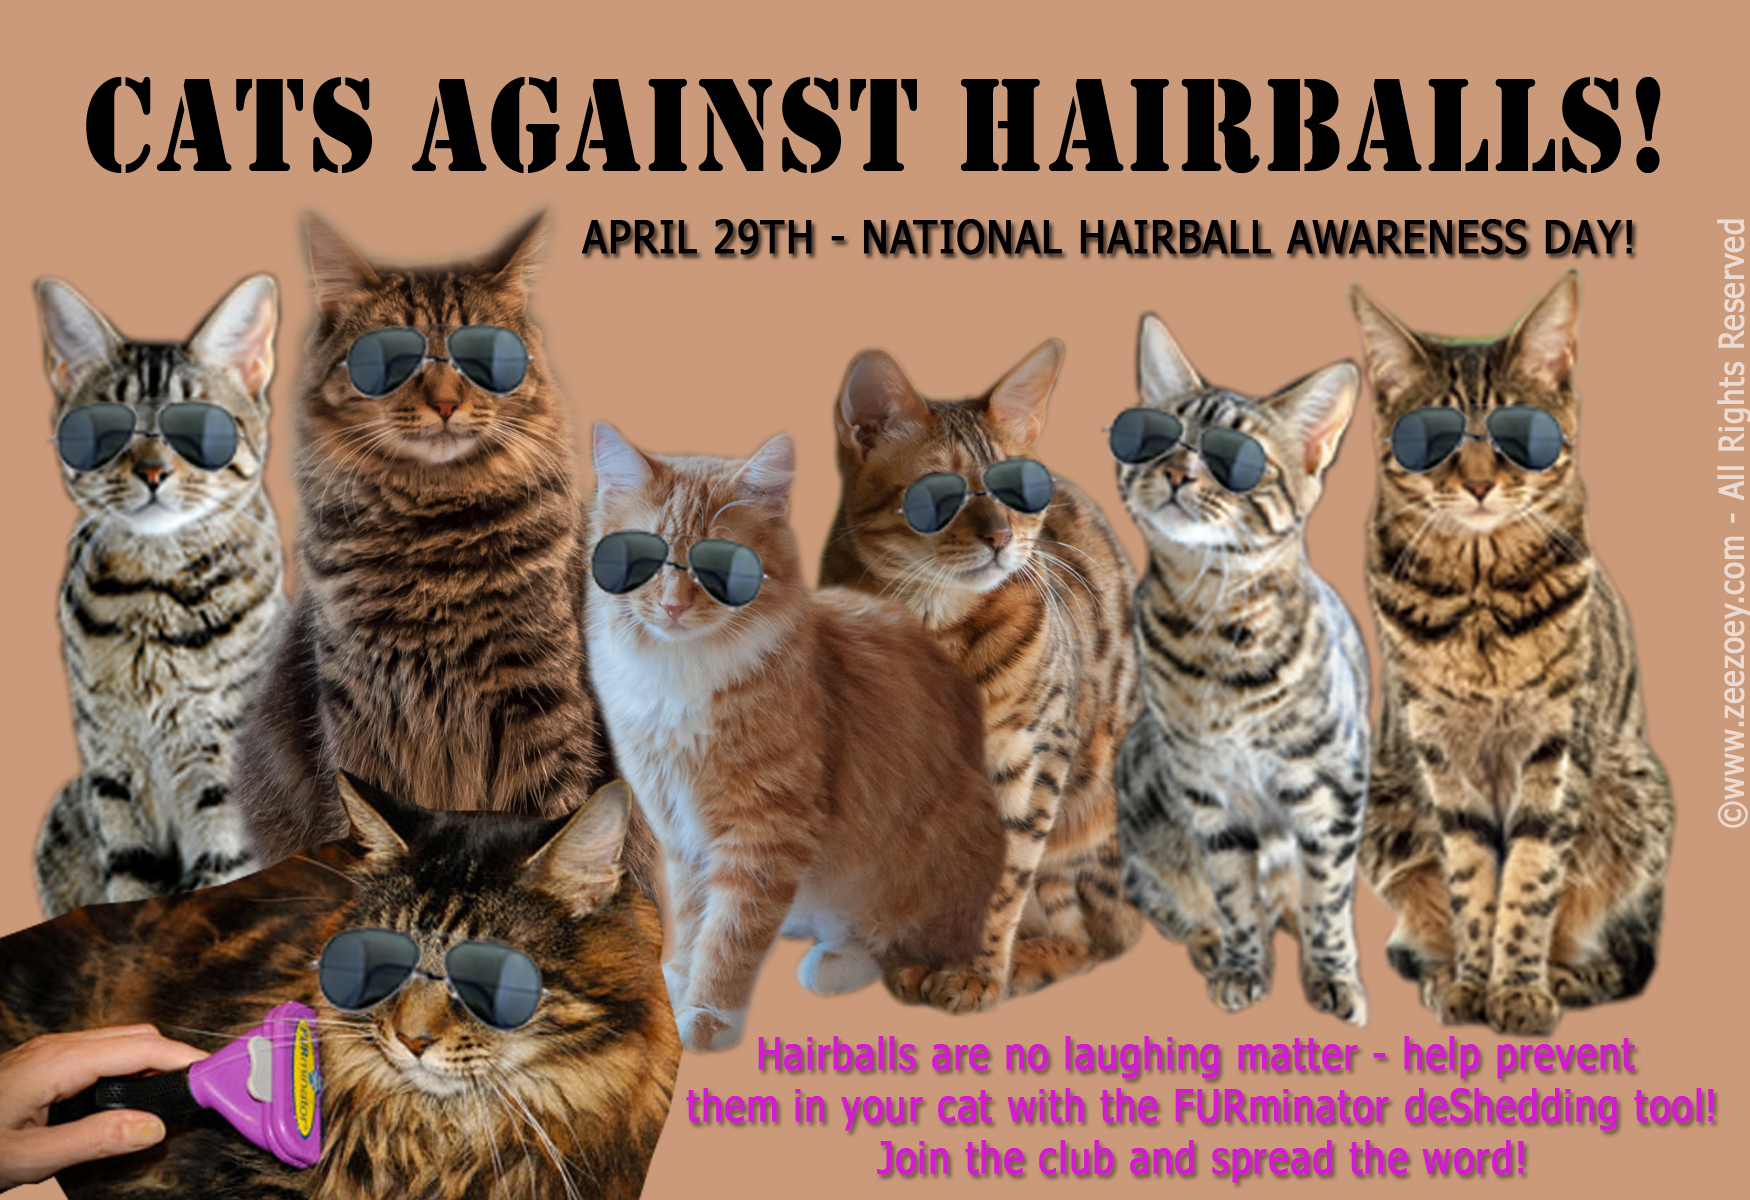 Hairballs in cats can be a sign of something dangerous. Regular grooming with the FURminator deShedding tool helps to eliminate hairballs